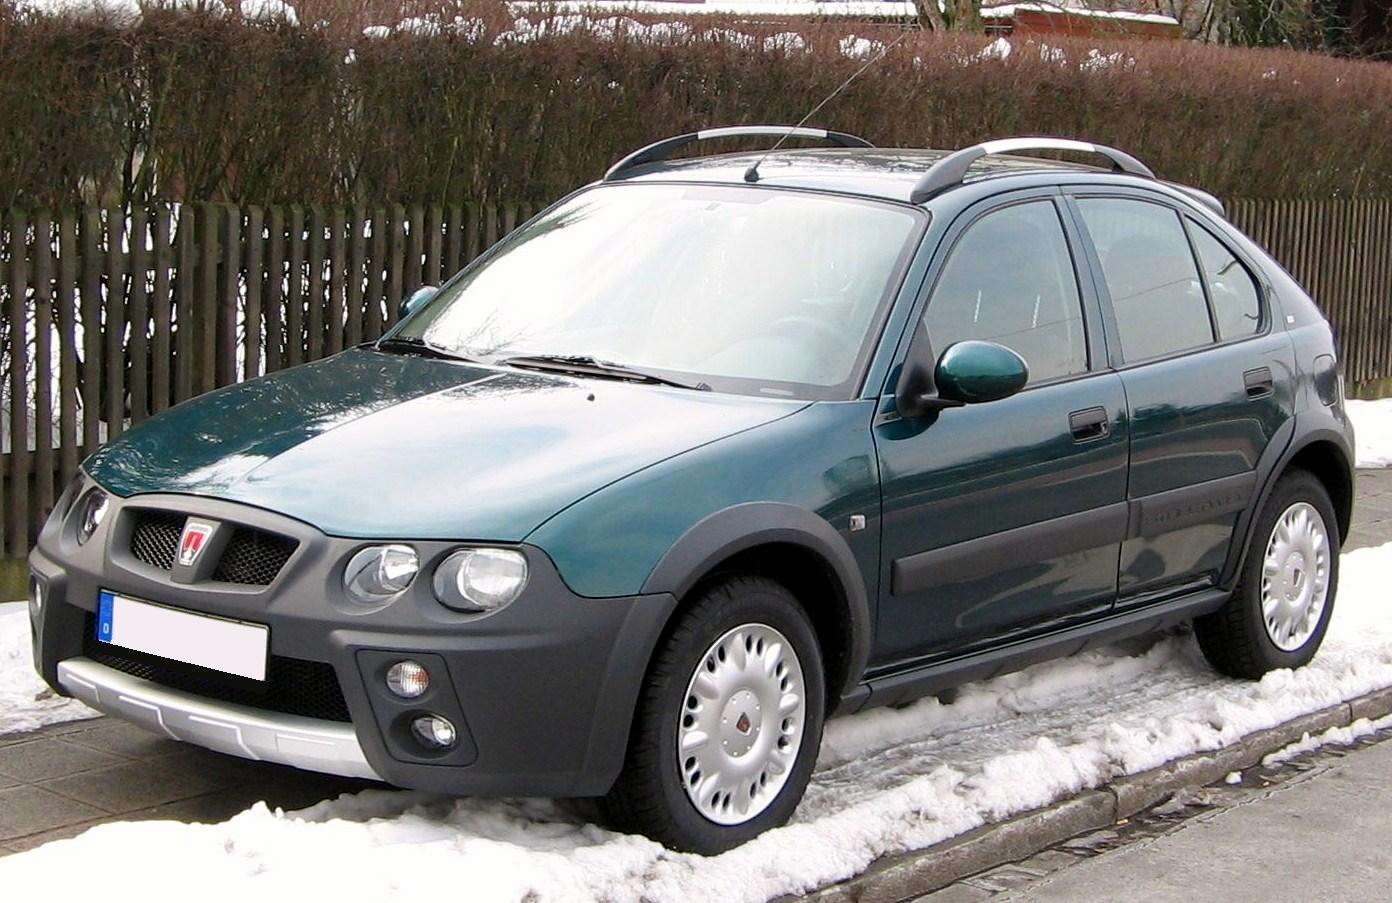 2006 Rover Streetwise #10